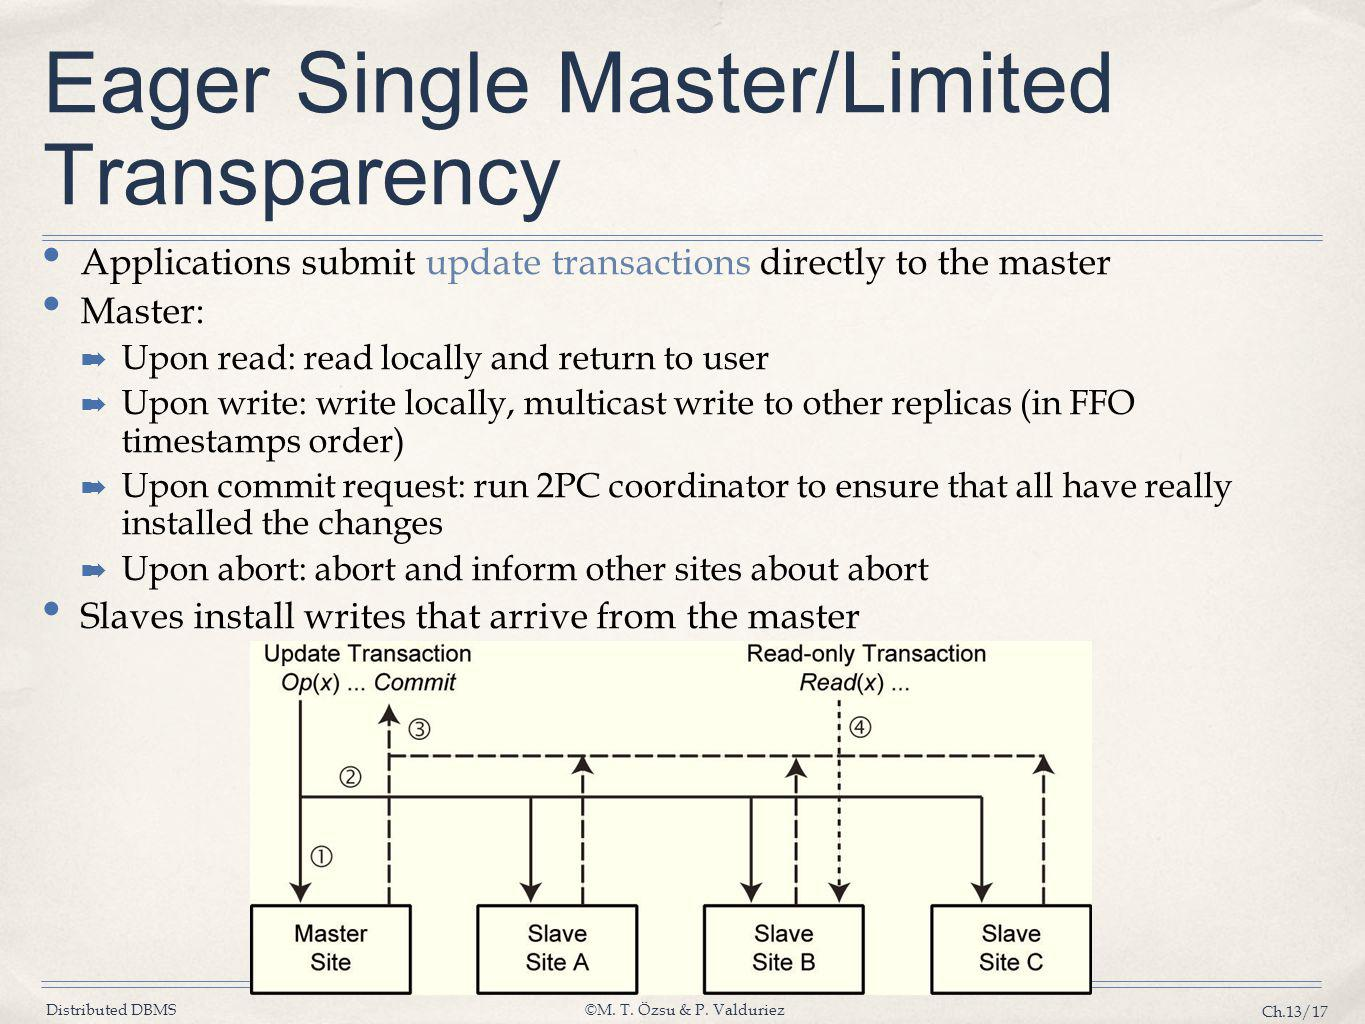 Eager Single Master/Limited Transparency